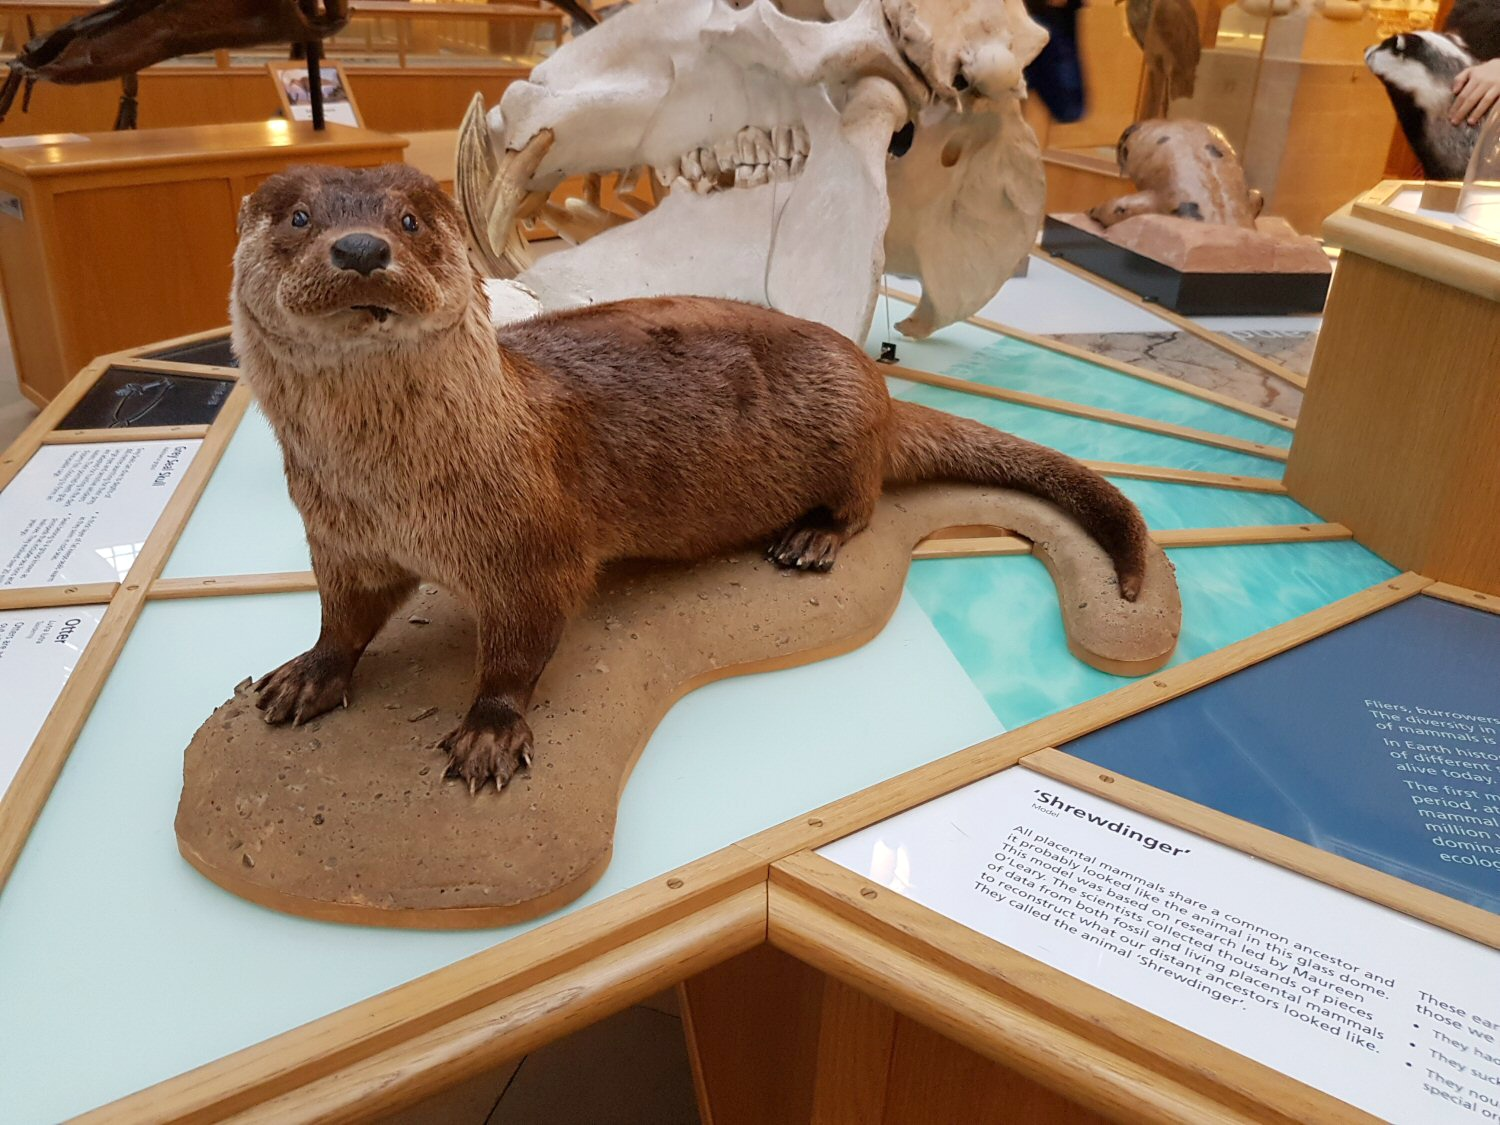 Otter - one of the exhibits at Oxford University Museum of Natural History. Our Oxford University natural history museum day out